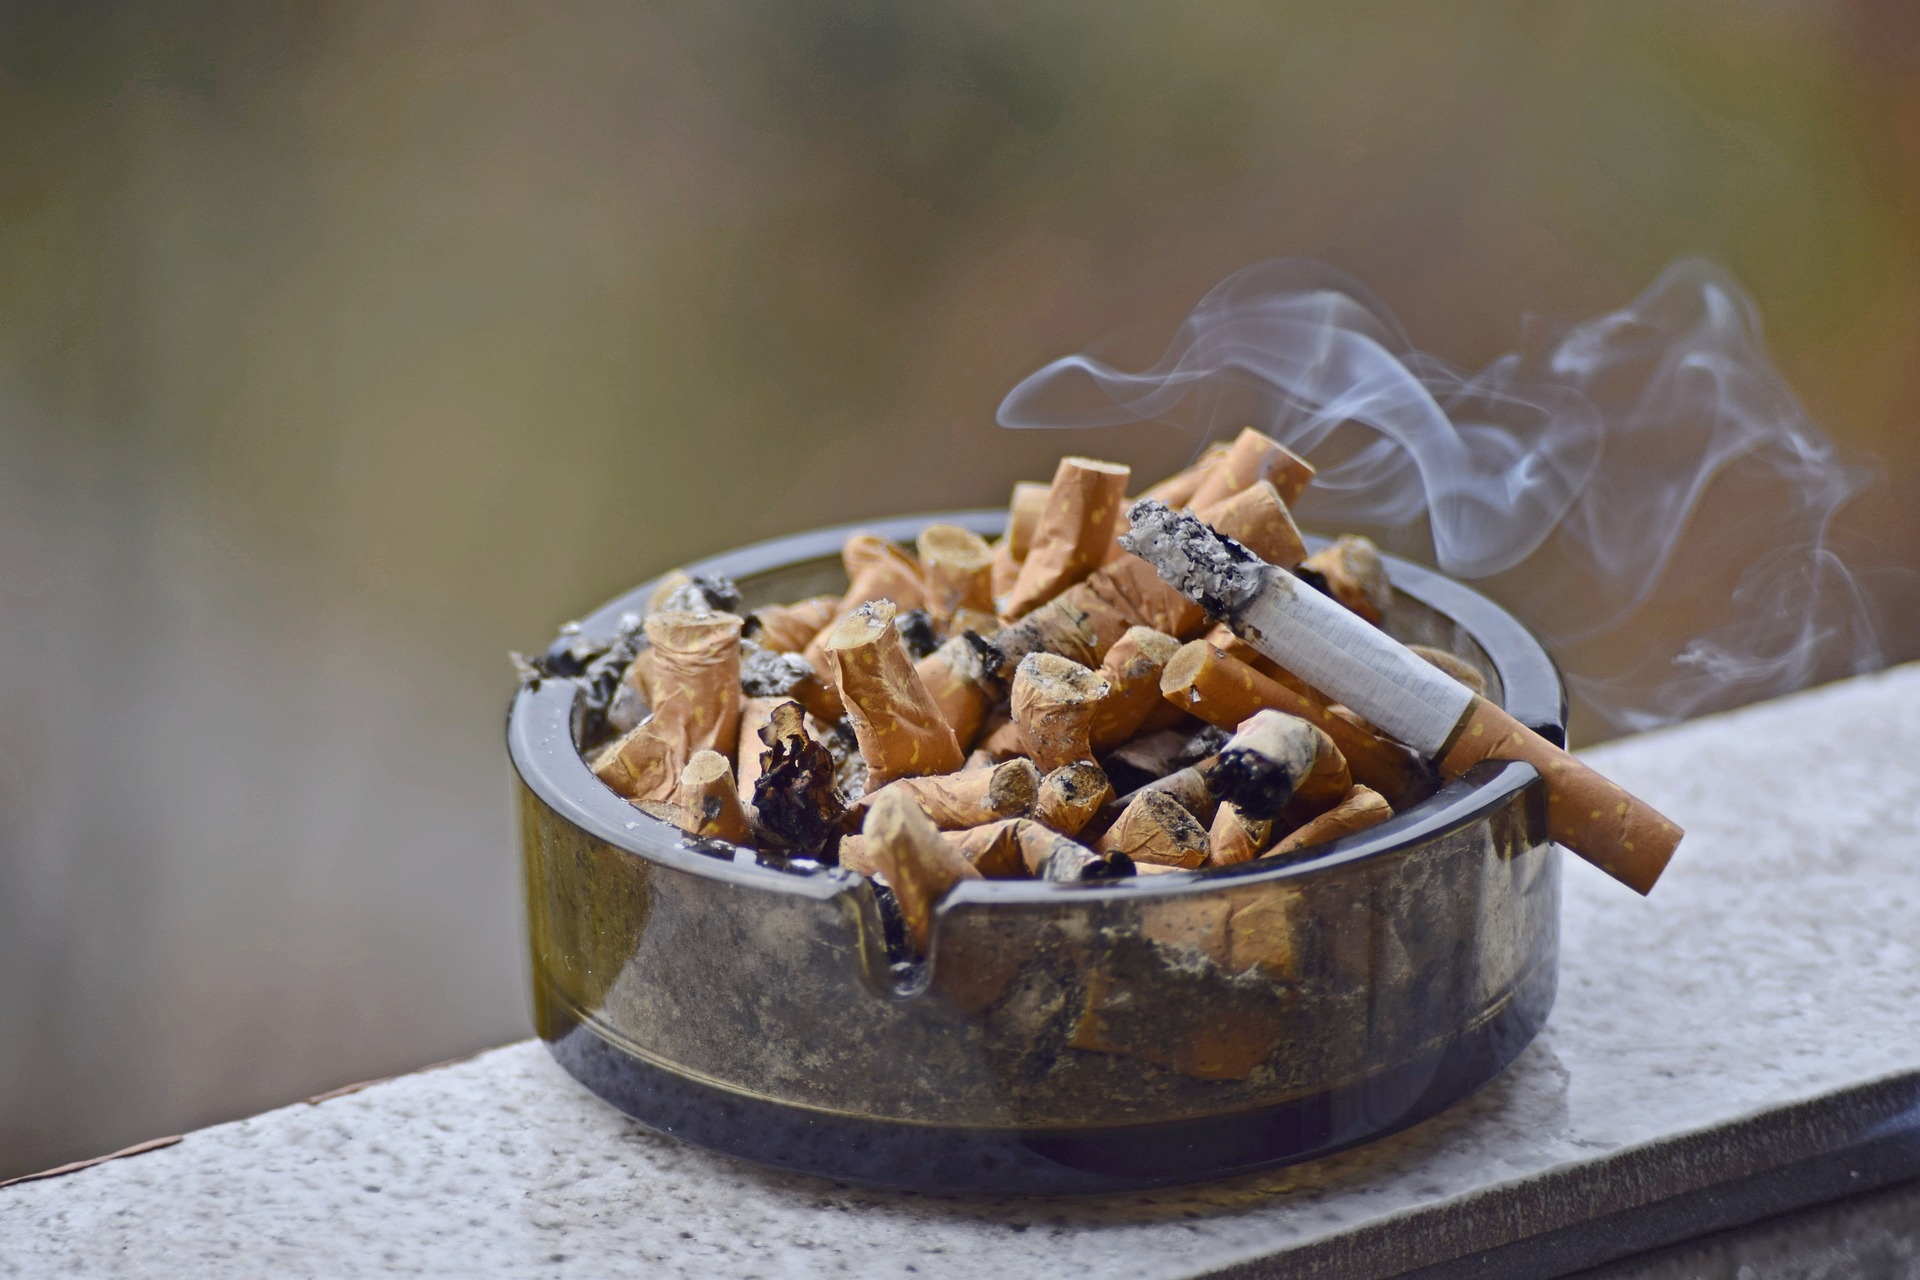 cigarettes in ashtray